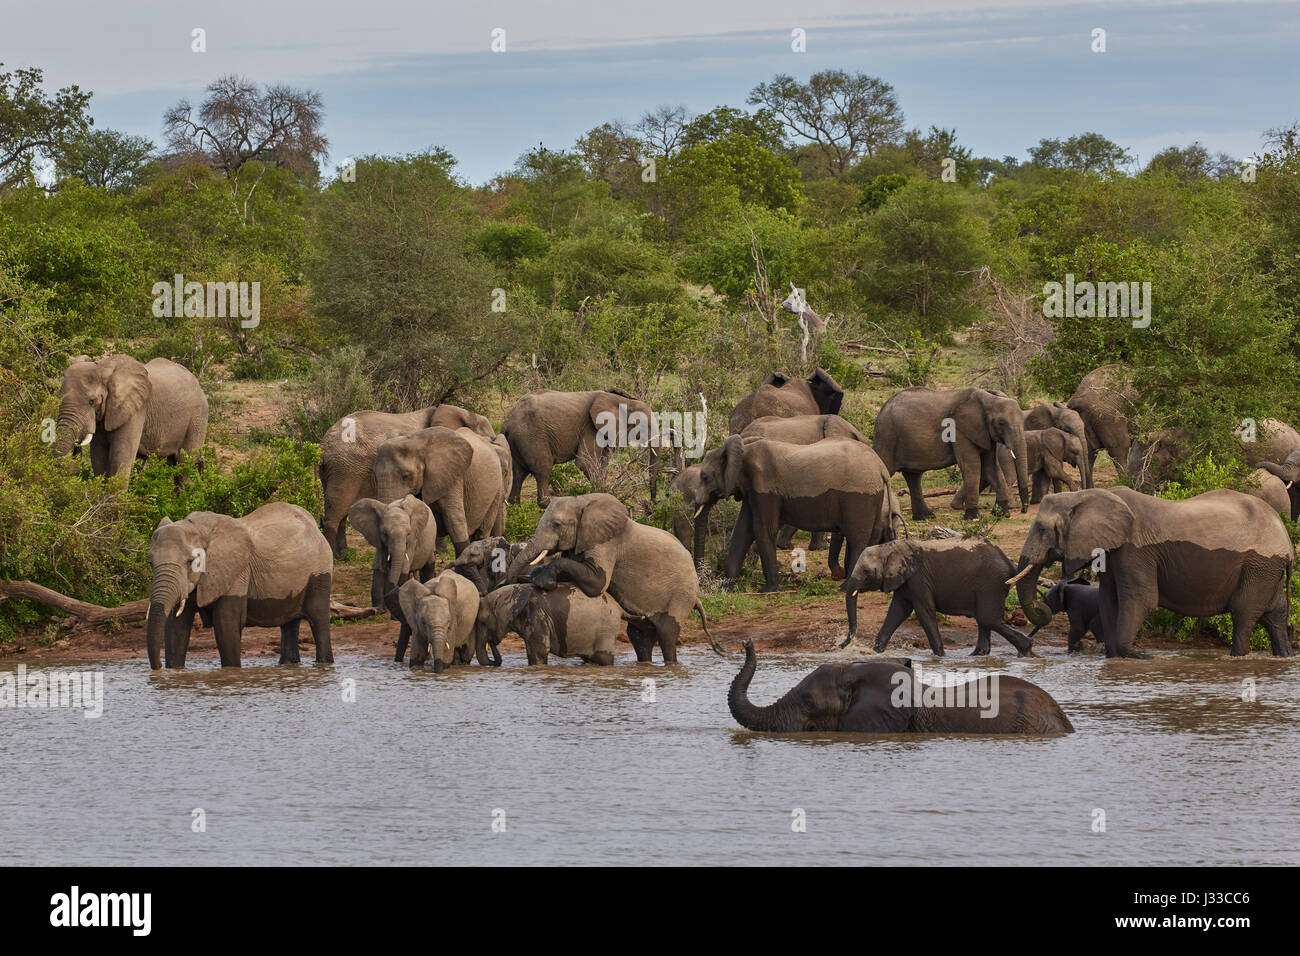 Bathing elephants in a waterhole, Krueger National park, South Africa, Africa - Stock Image